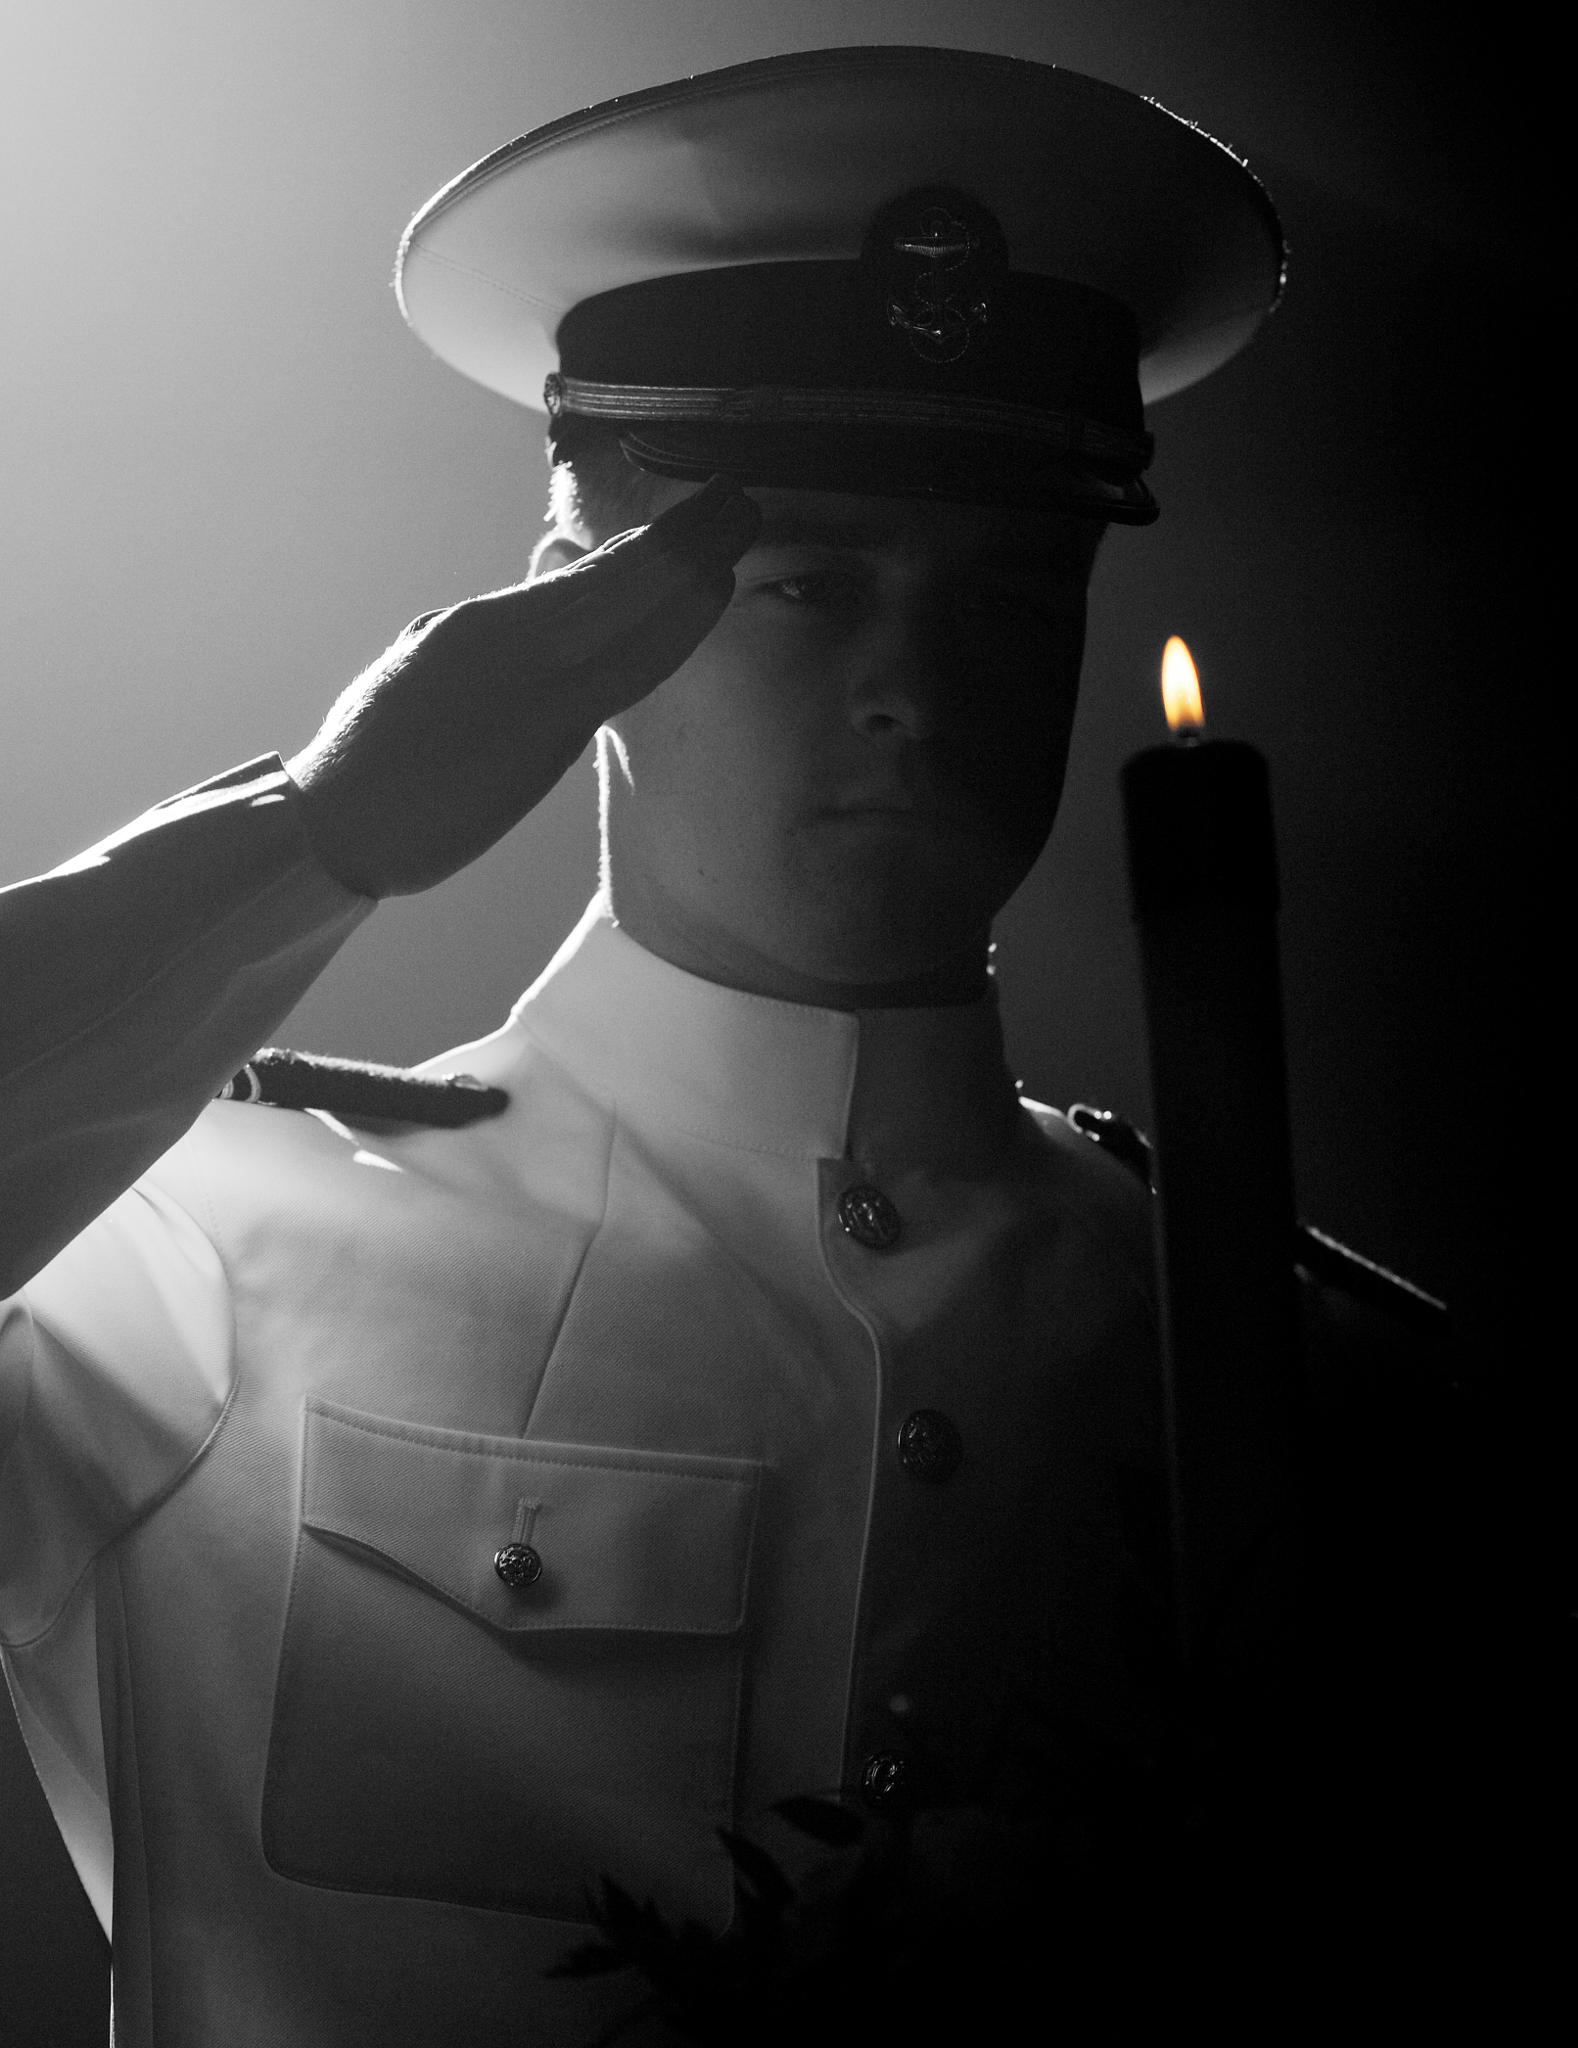 The Last Salute by Hugh Mitchell